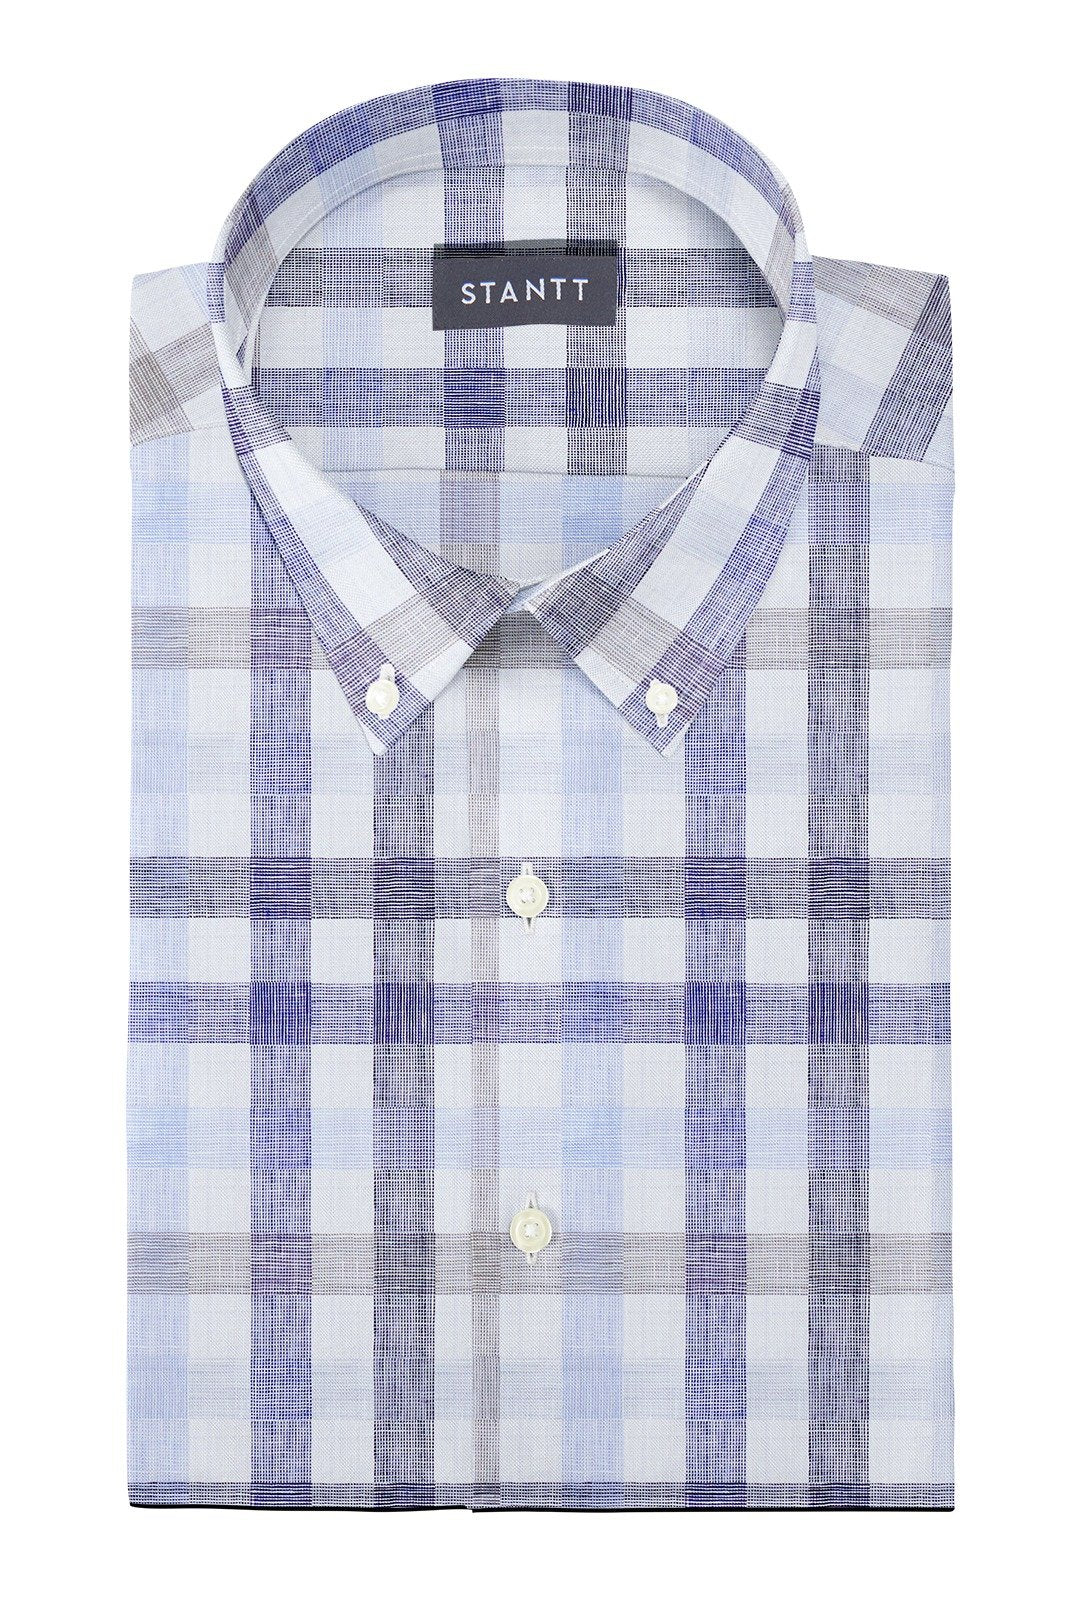 Blue and Beige Large Linen Check: Button-Down Collar, Barrel Cuff